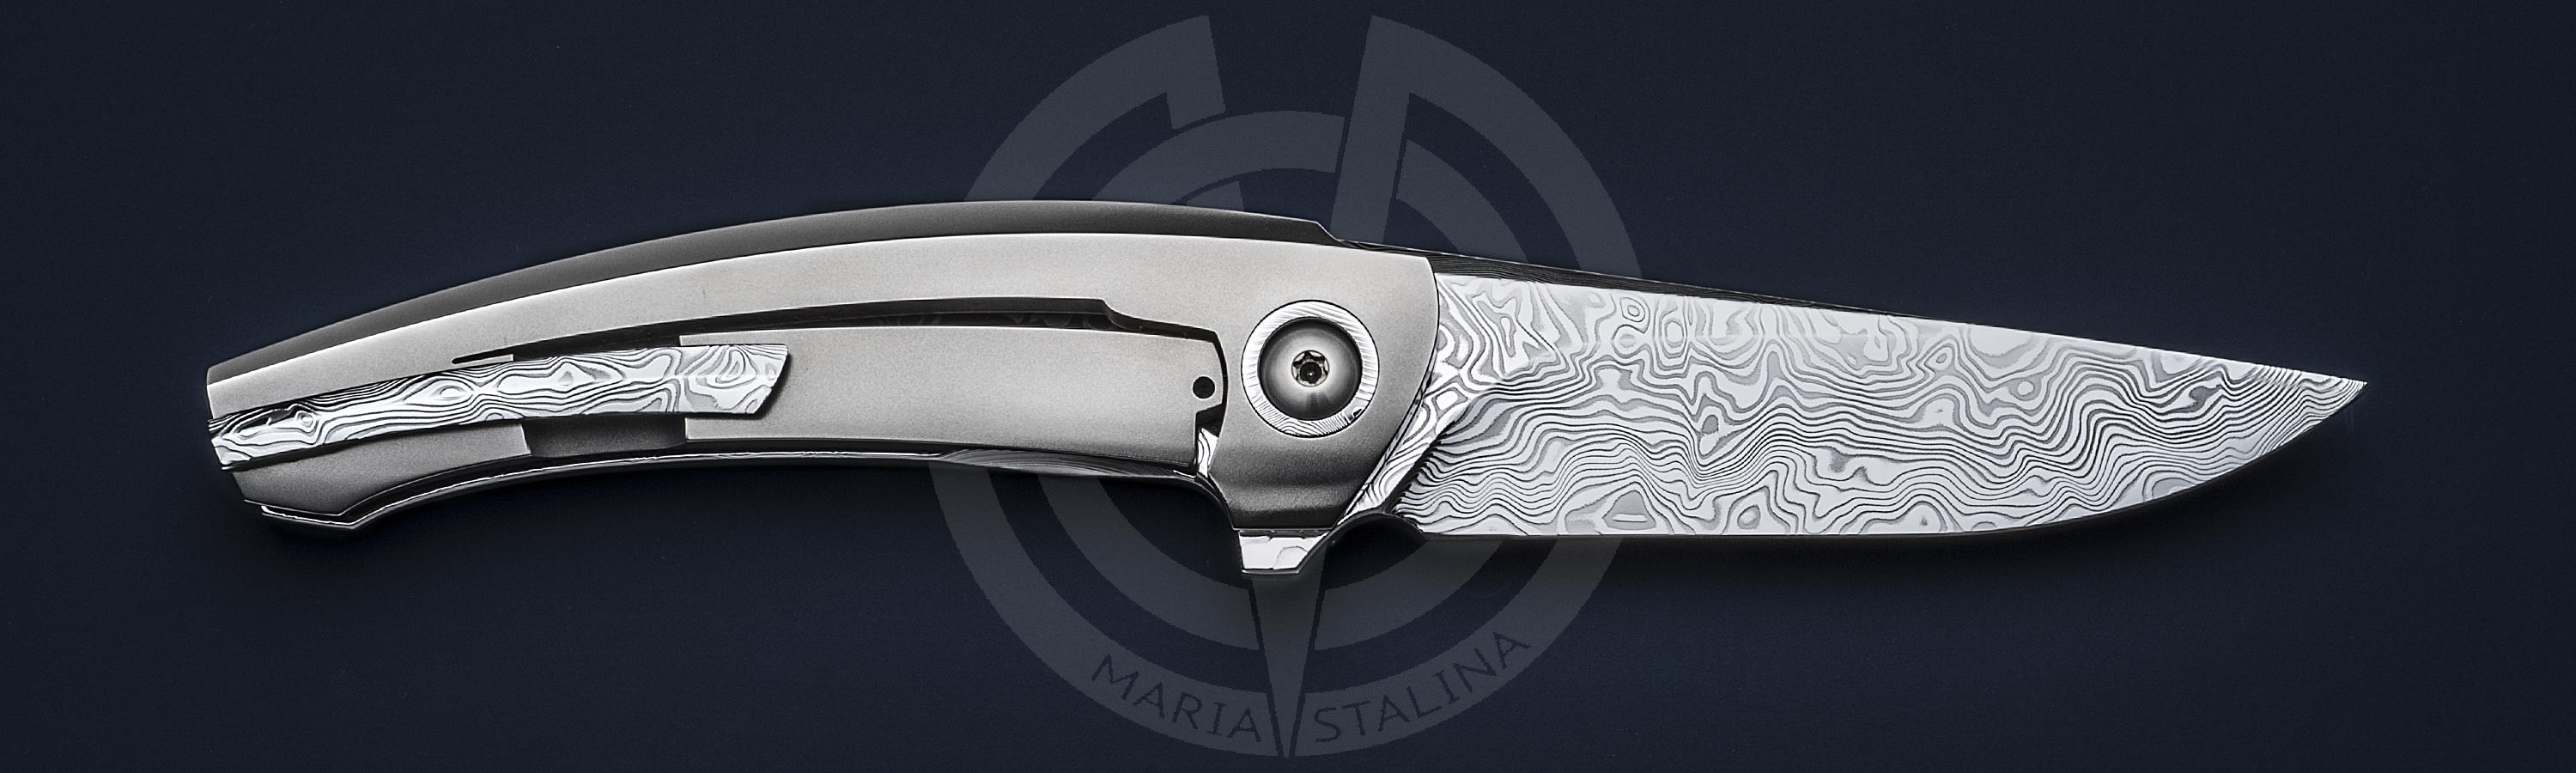 Lee Lerman Knives